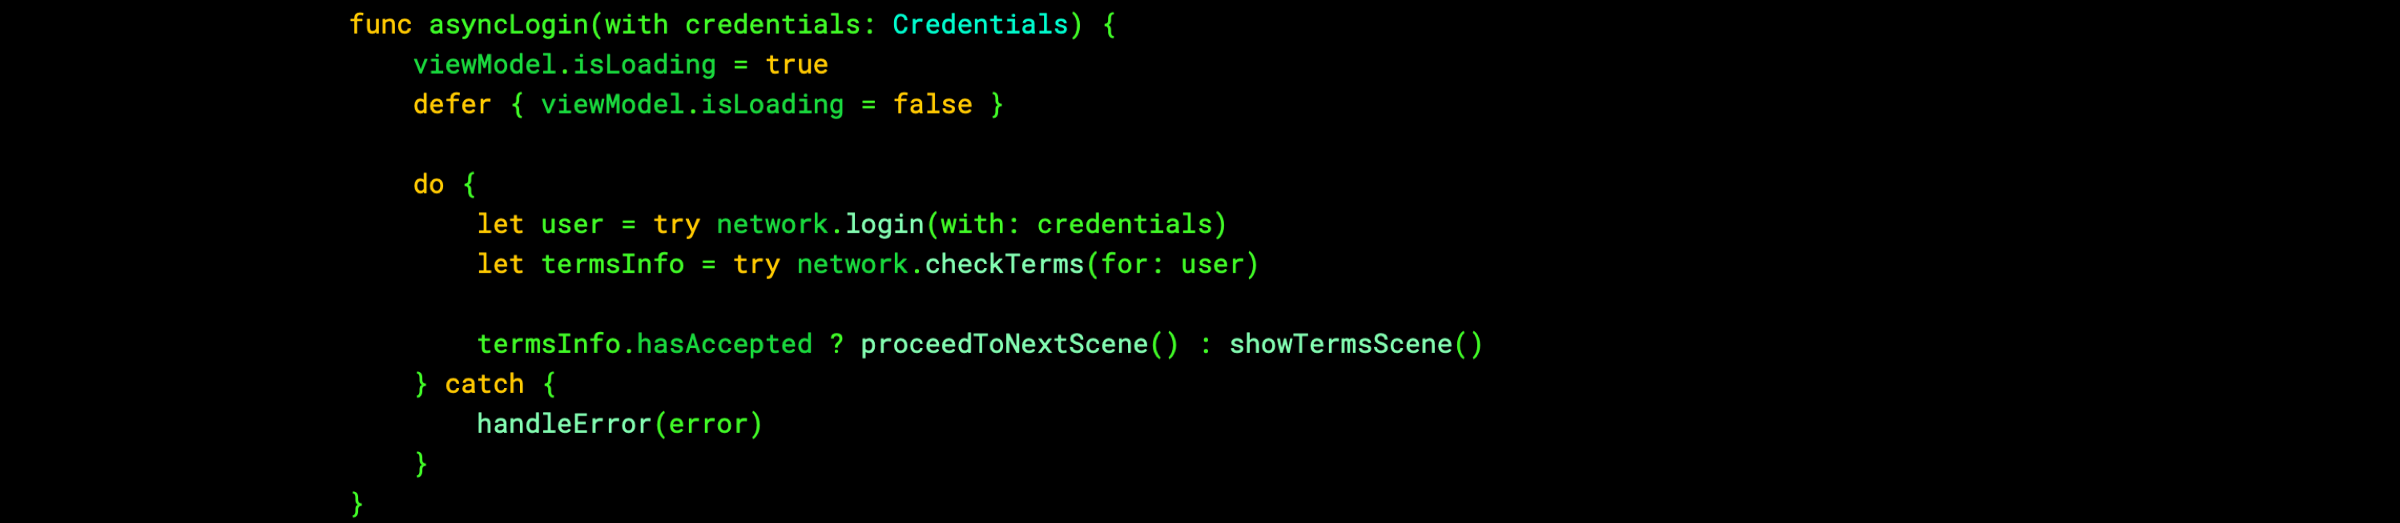 Synchronous processing in Swift